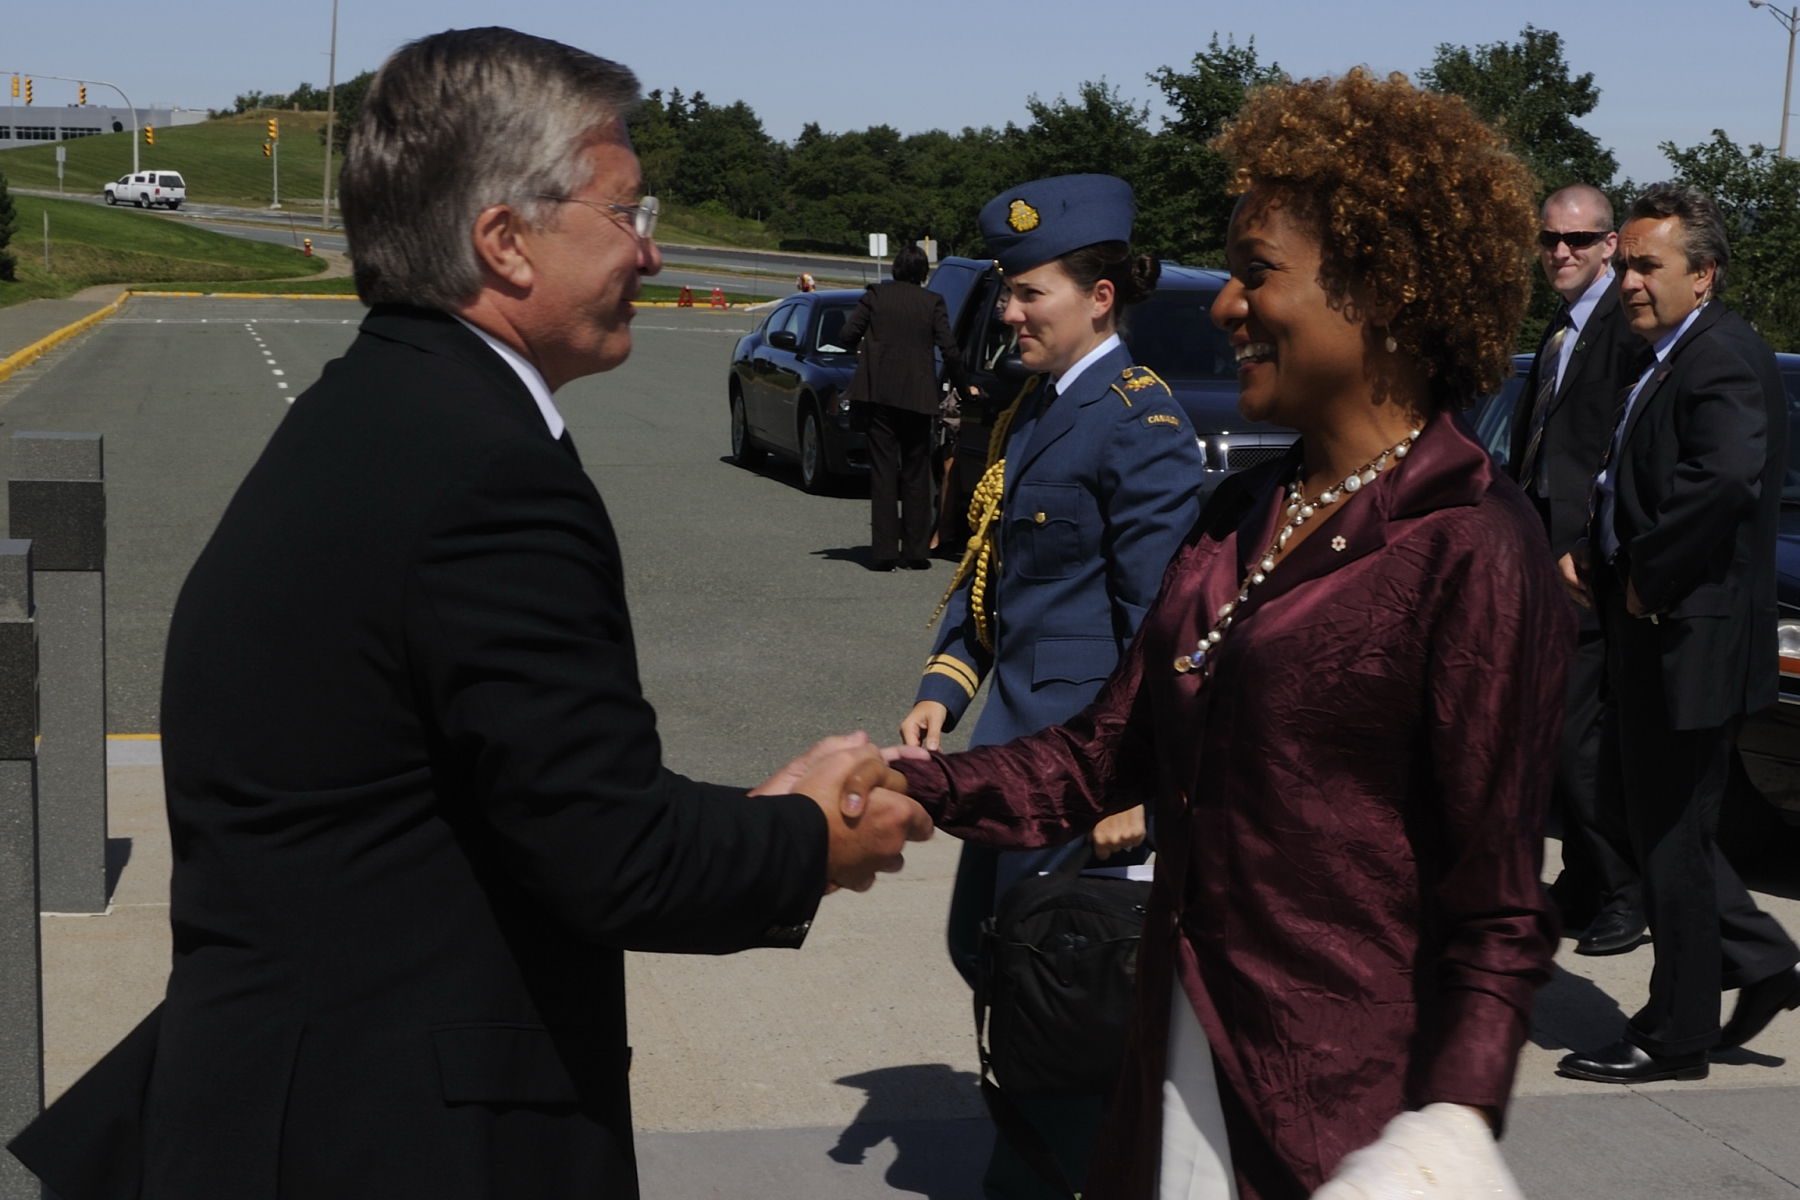 The Governor General was welcomed to Confederation Building, in St. John's, by Premier Danny Williams.